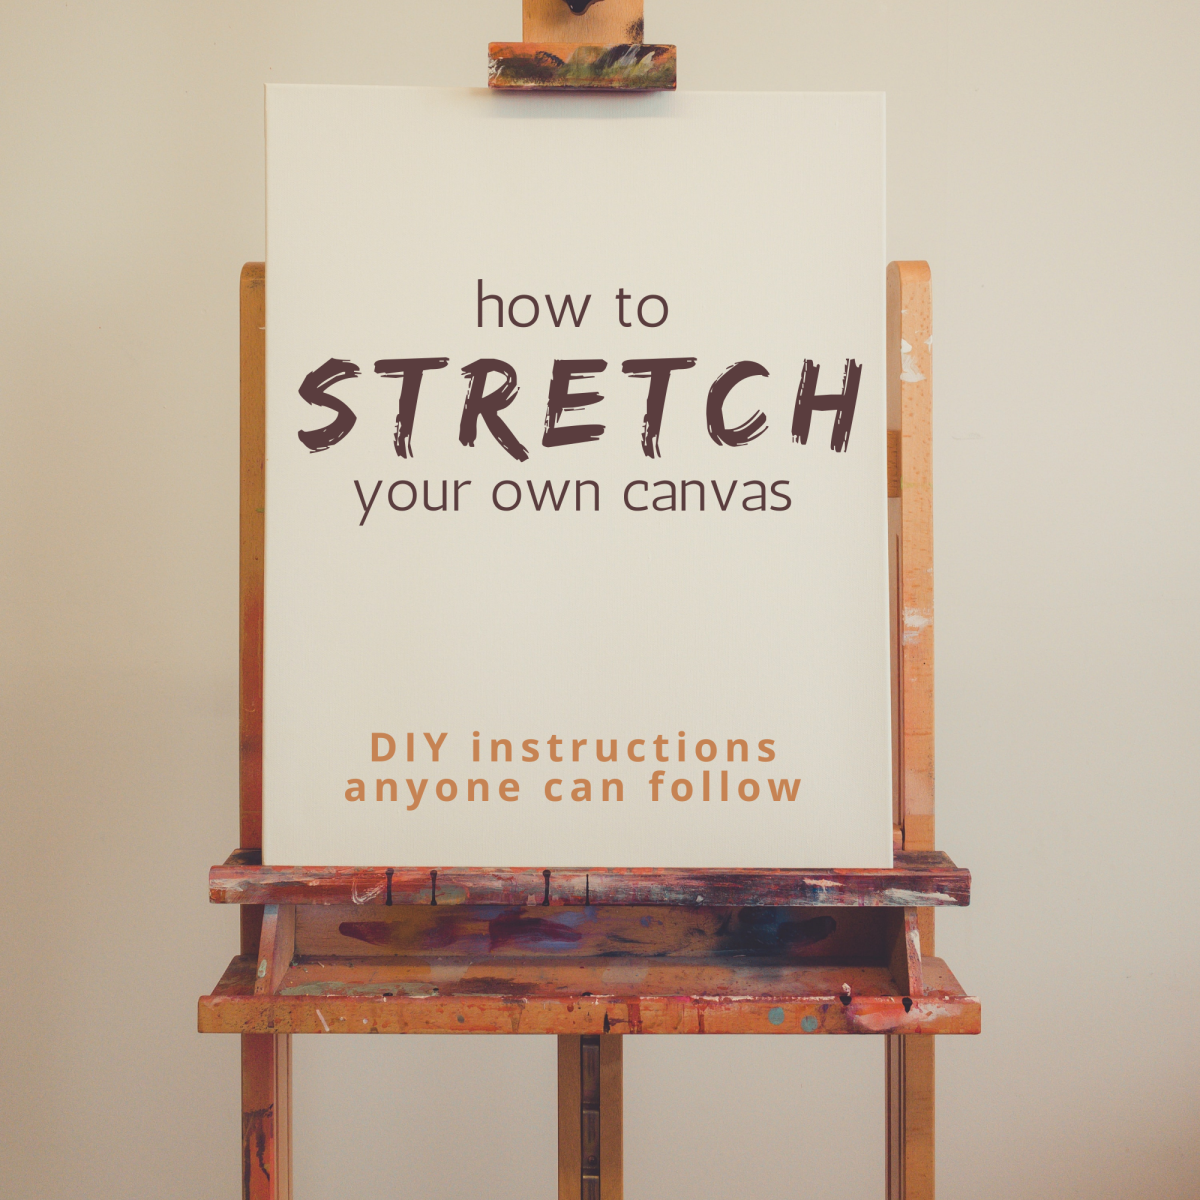 How to stretch your own canvas on a frame.